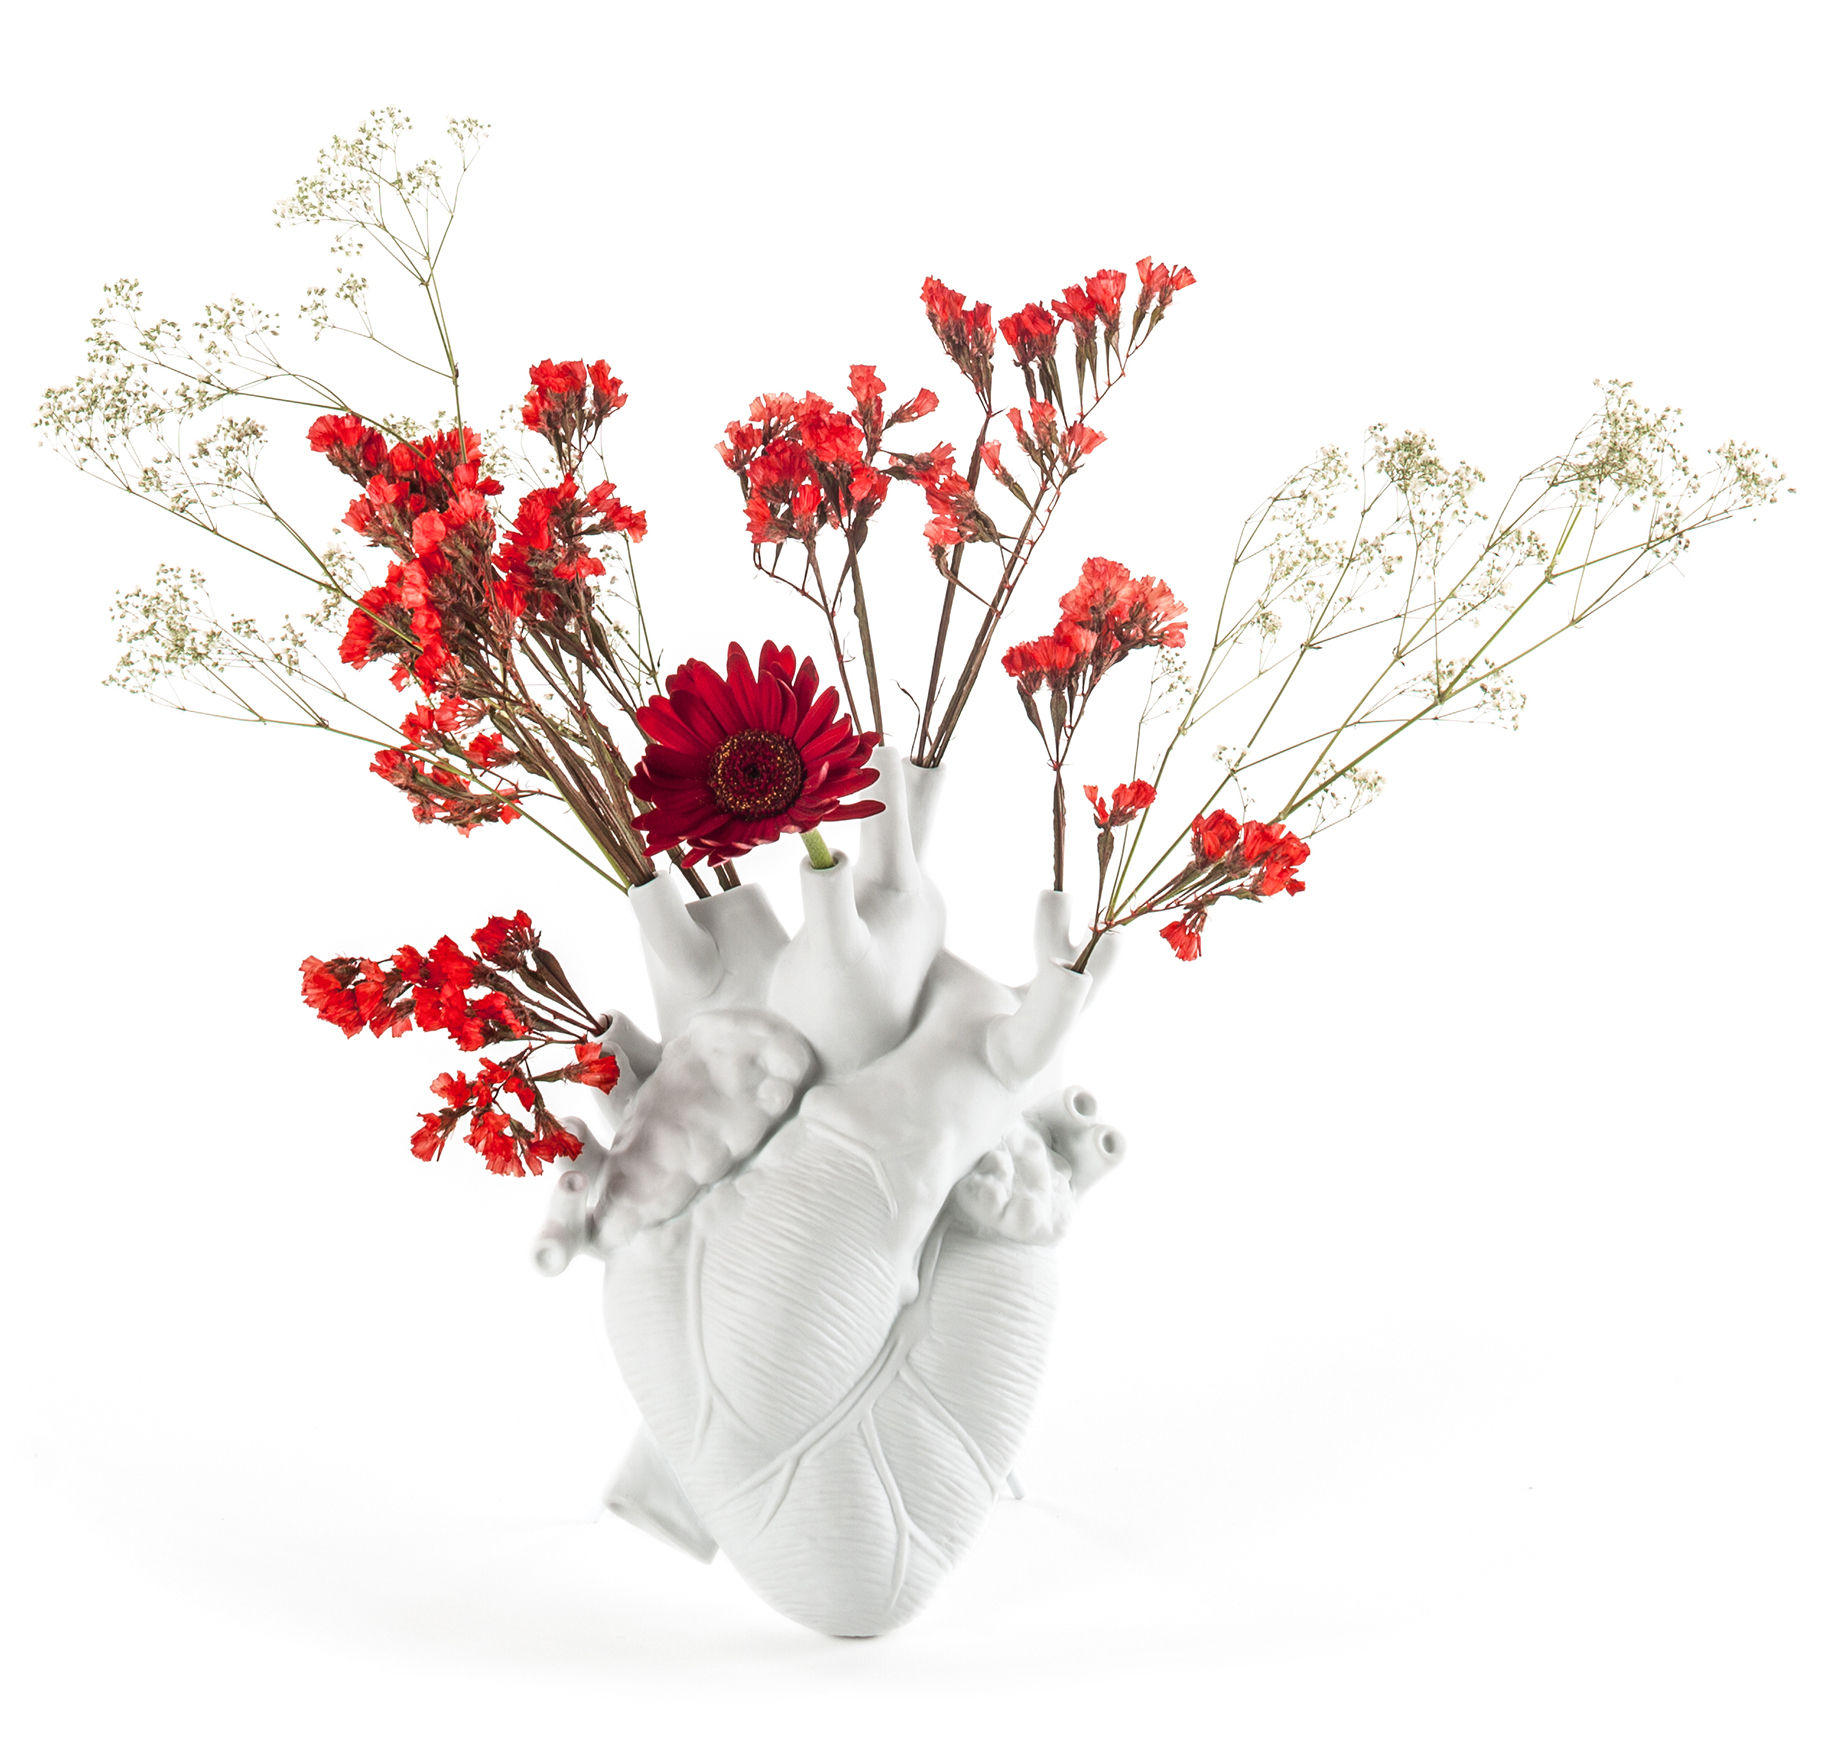 Decoration - Vases - Love in Bloom Vase - / Human heart by Seletti - White - China